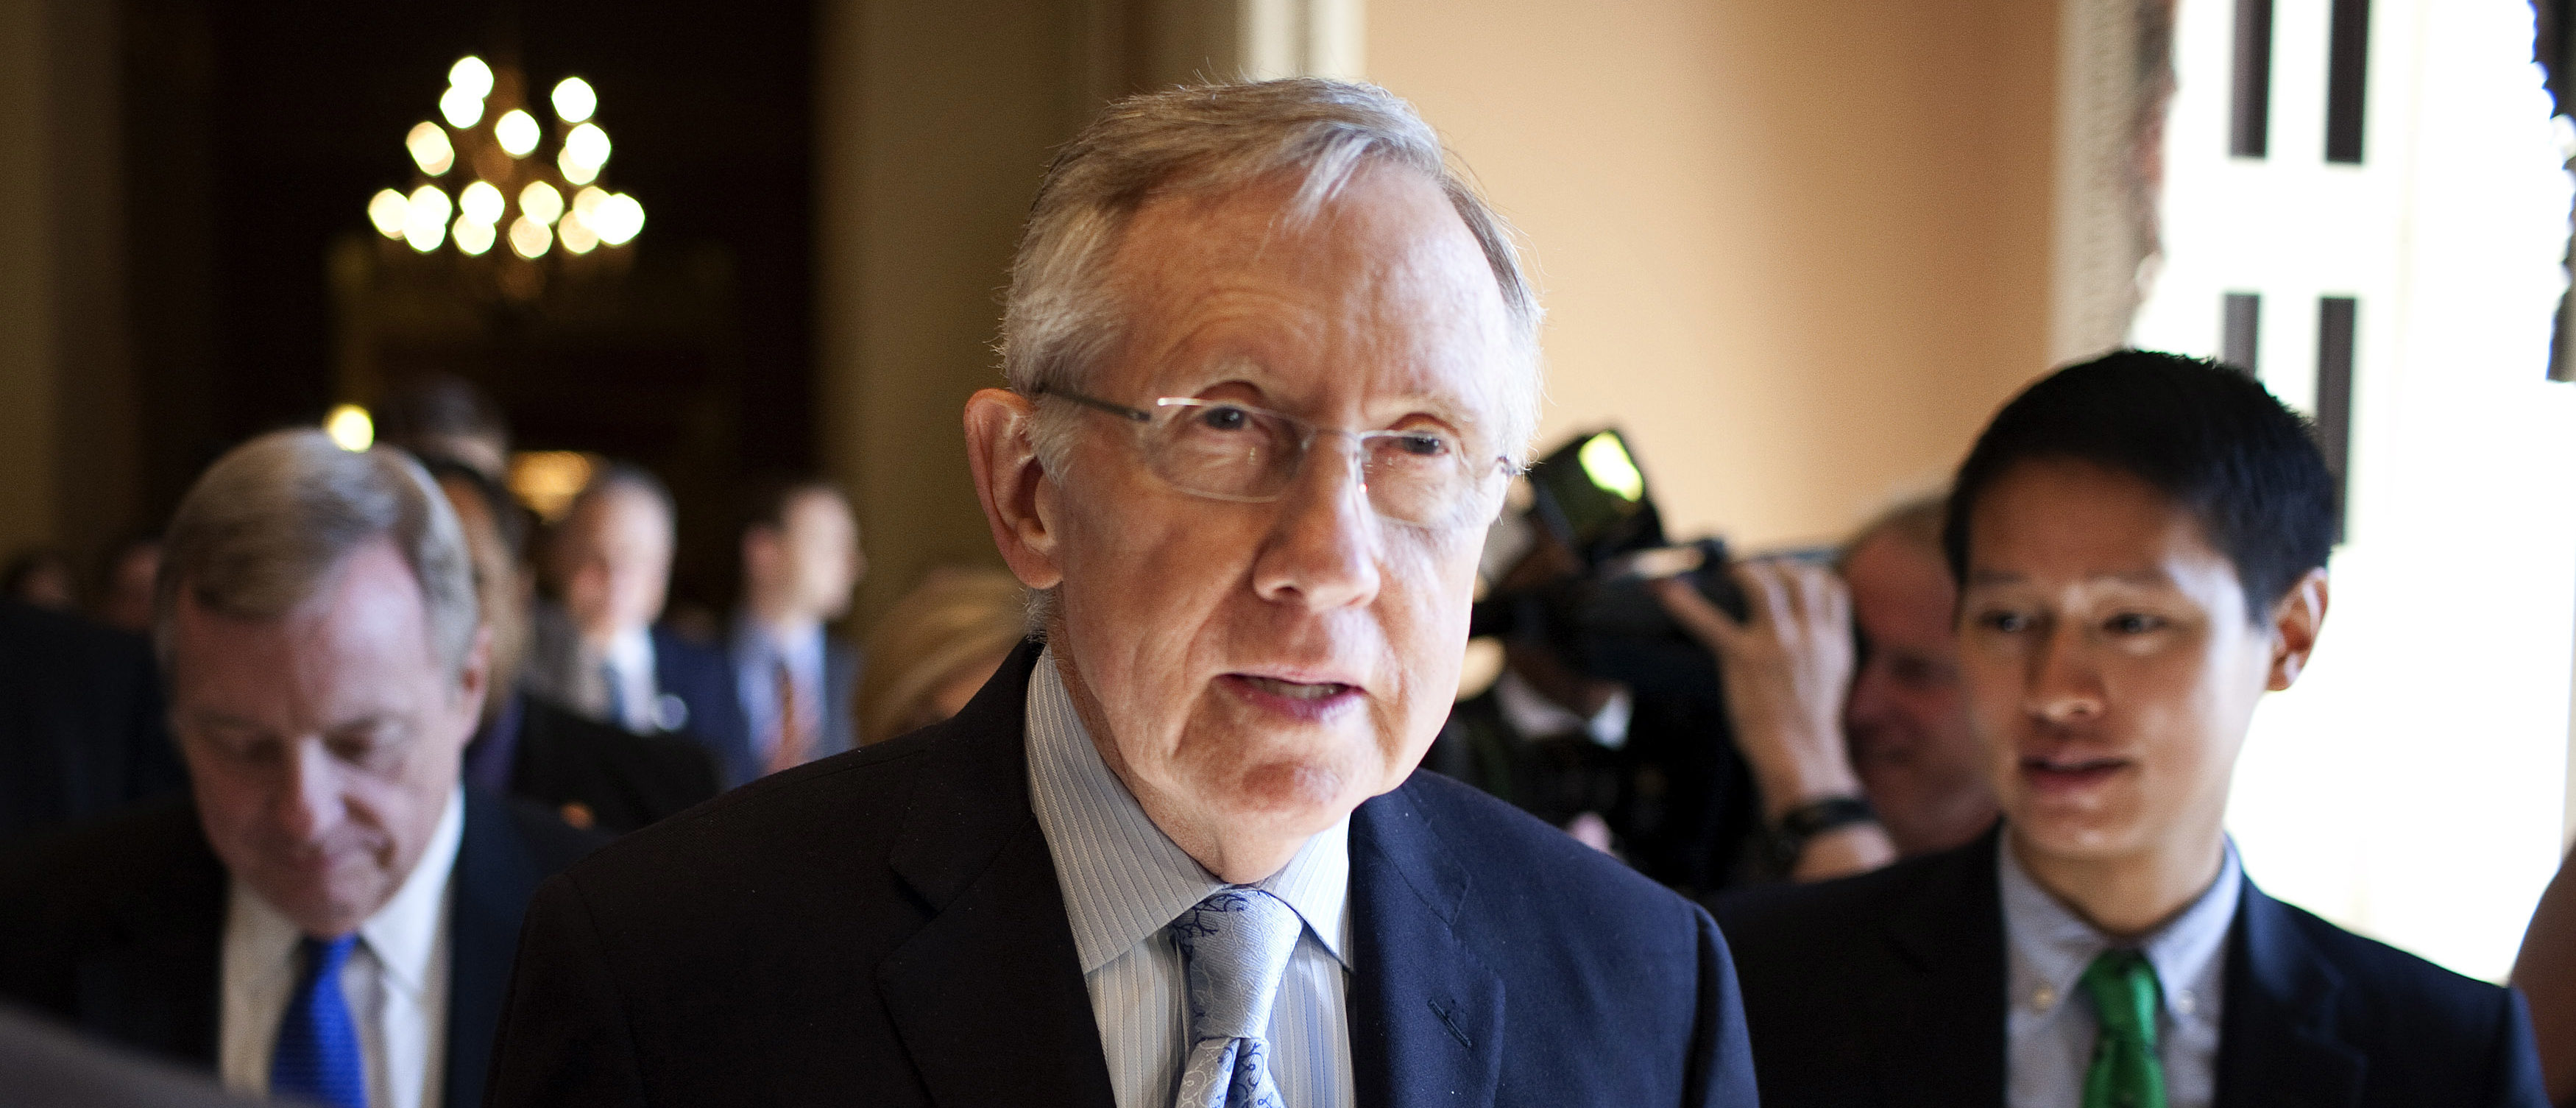 Senate Majority Leader Harry Reid (D-NV) speaks with reporters after meeting with House Democratic leadership on the debt ceiling crises on Capitol Hill in Washington July 31, 2011. U.S. lawmakers were close to a last-gasp $3 trillion deal on Sunday to raise the borrowing limit and assure financial markets that the United States will avoid a potentially catastrophic default. REUTERS/Joshua Roberts